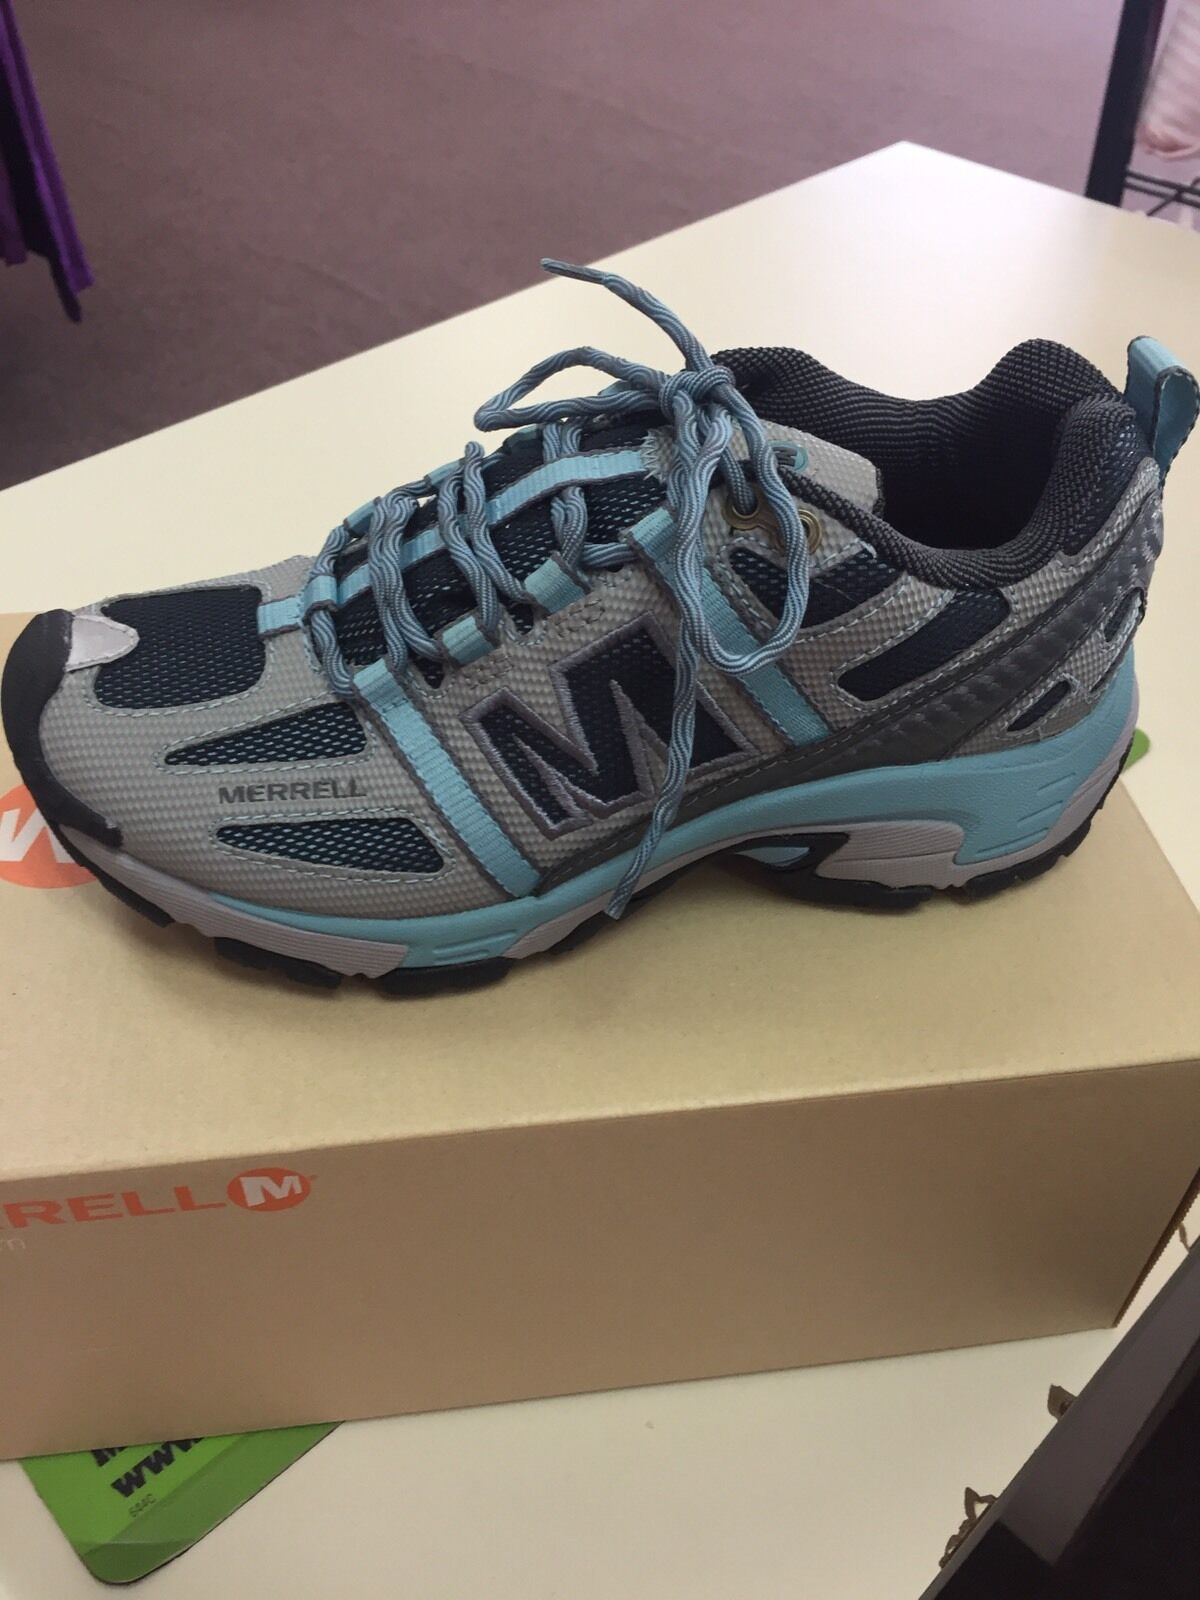 MERRELL Excel Grid WOMEN'S TRAIL RUNNING SHOES SIZE 6m Mineral Blue New